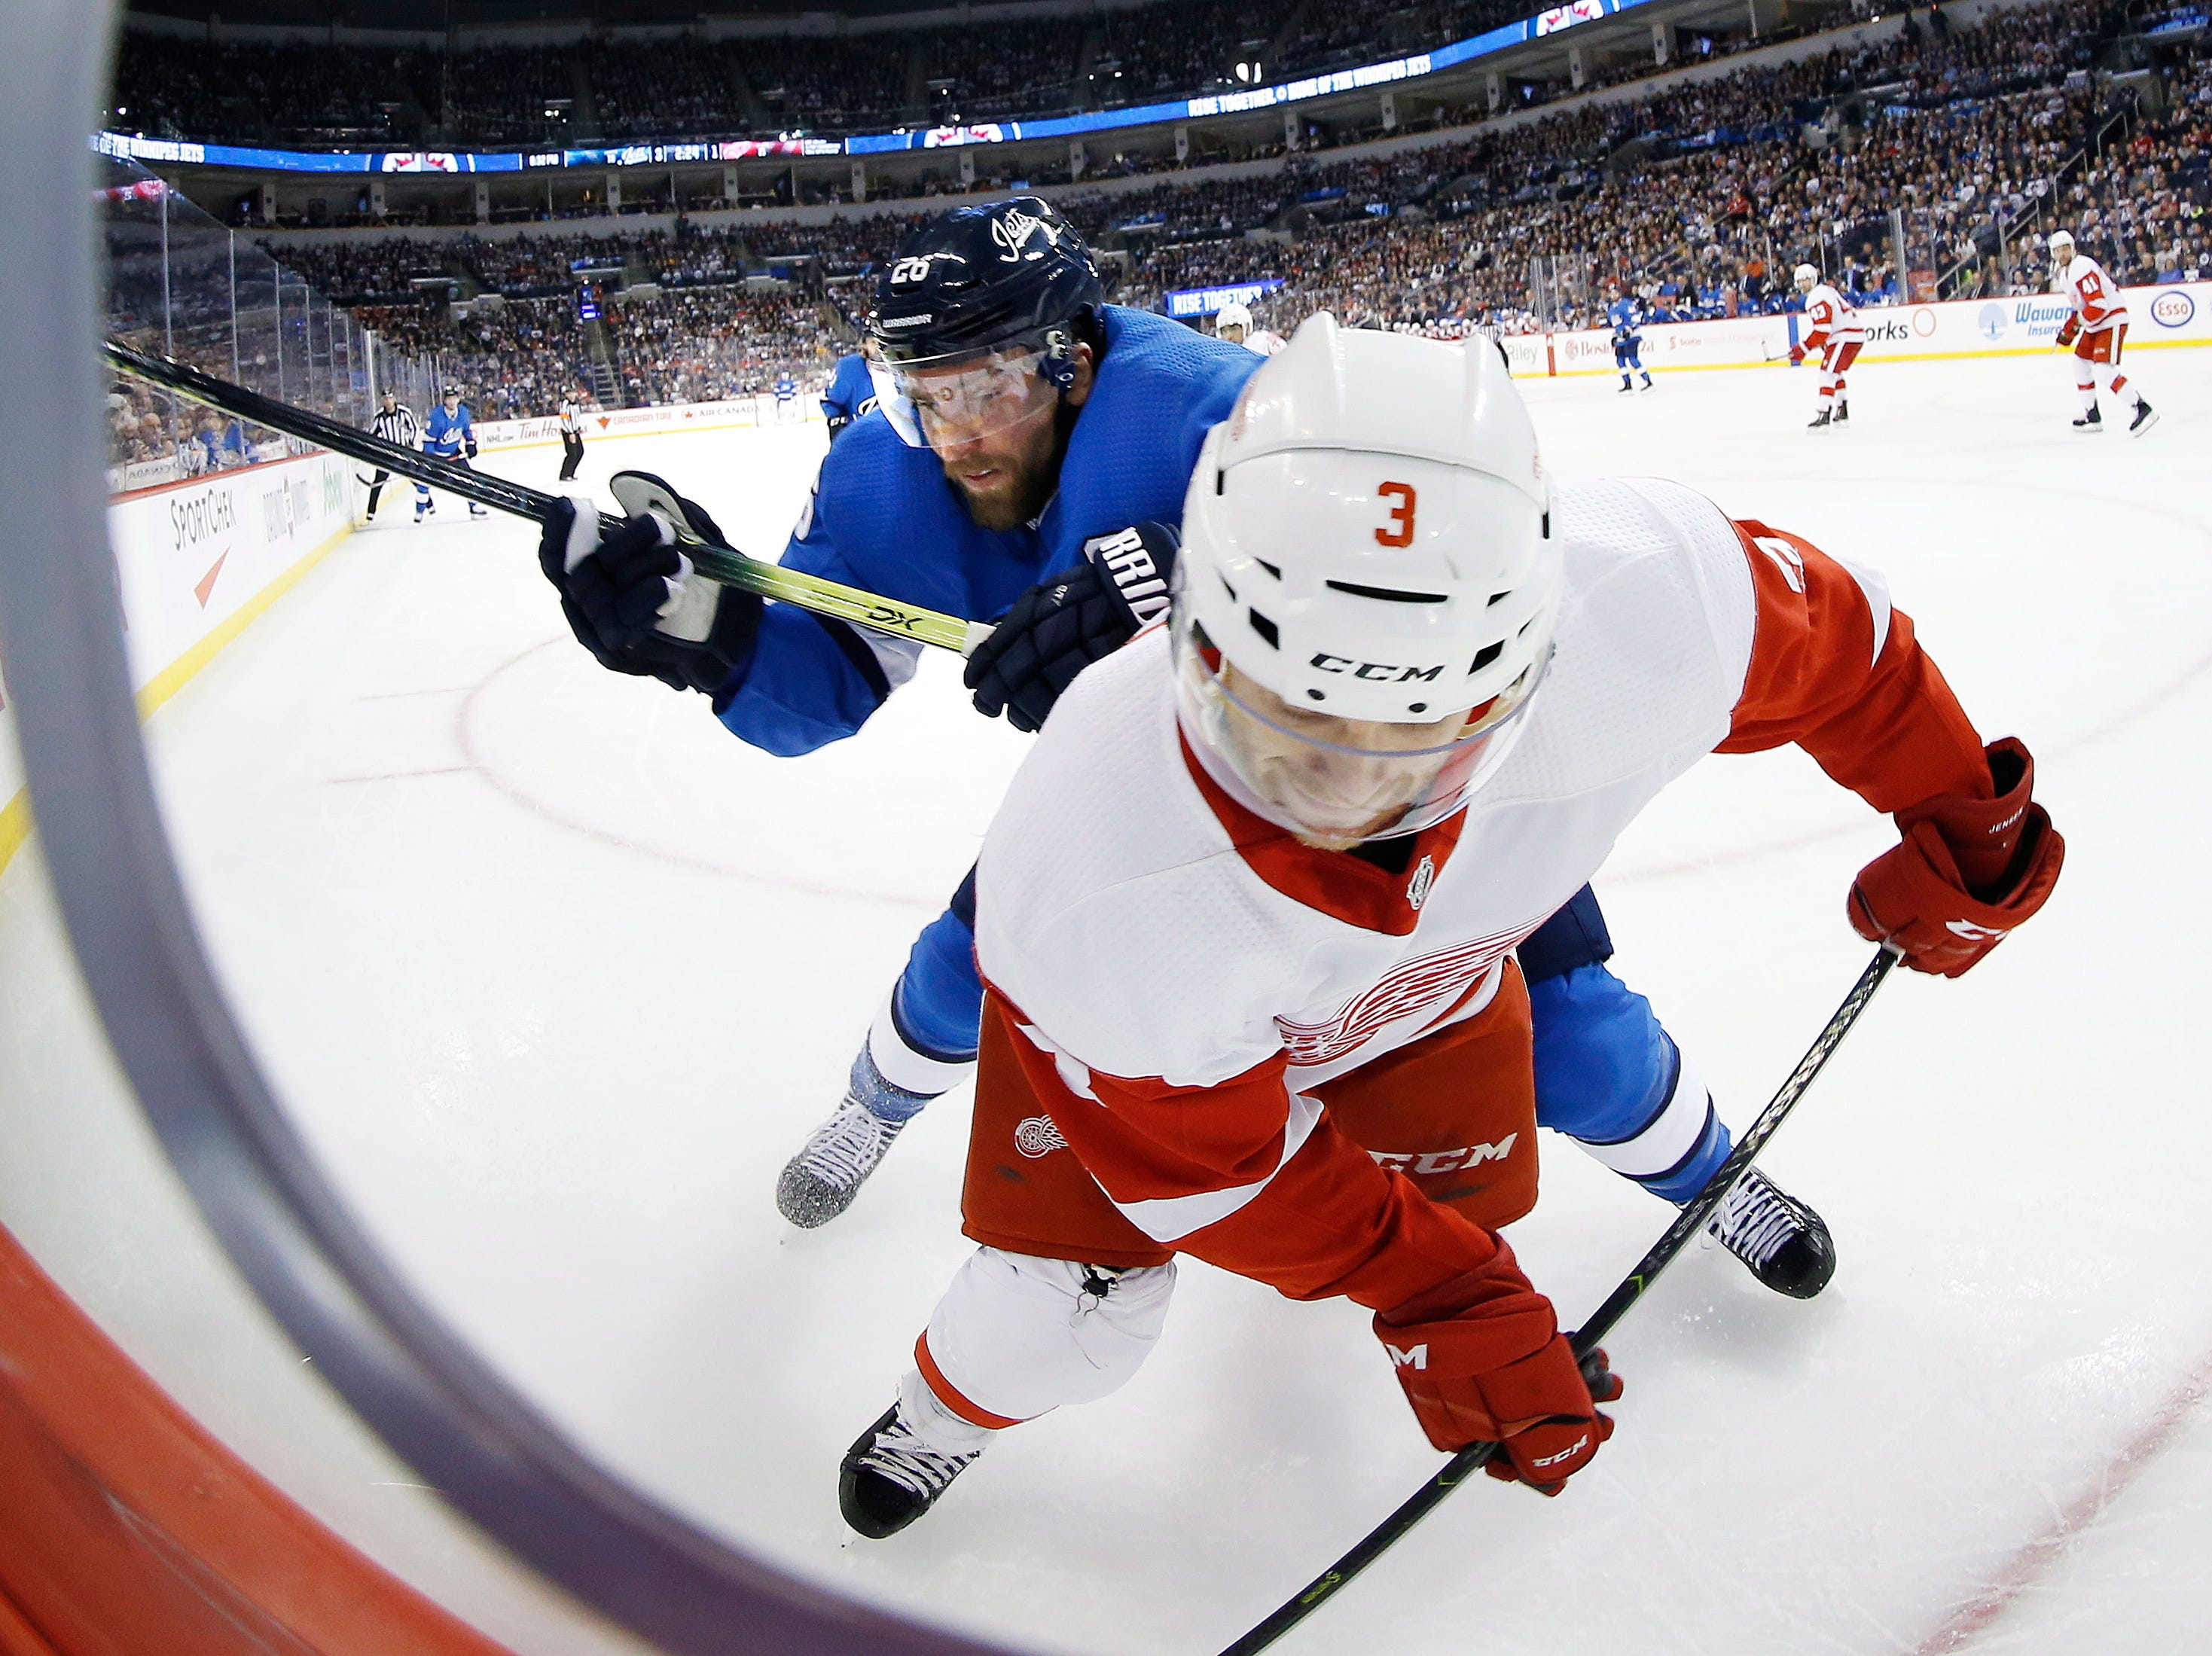 Winnipeg Jets' Jack Roslovic (28) checks Detroit Red Wings' Nick Jensen (3) during the second period.